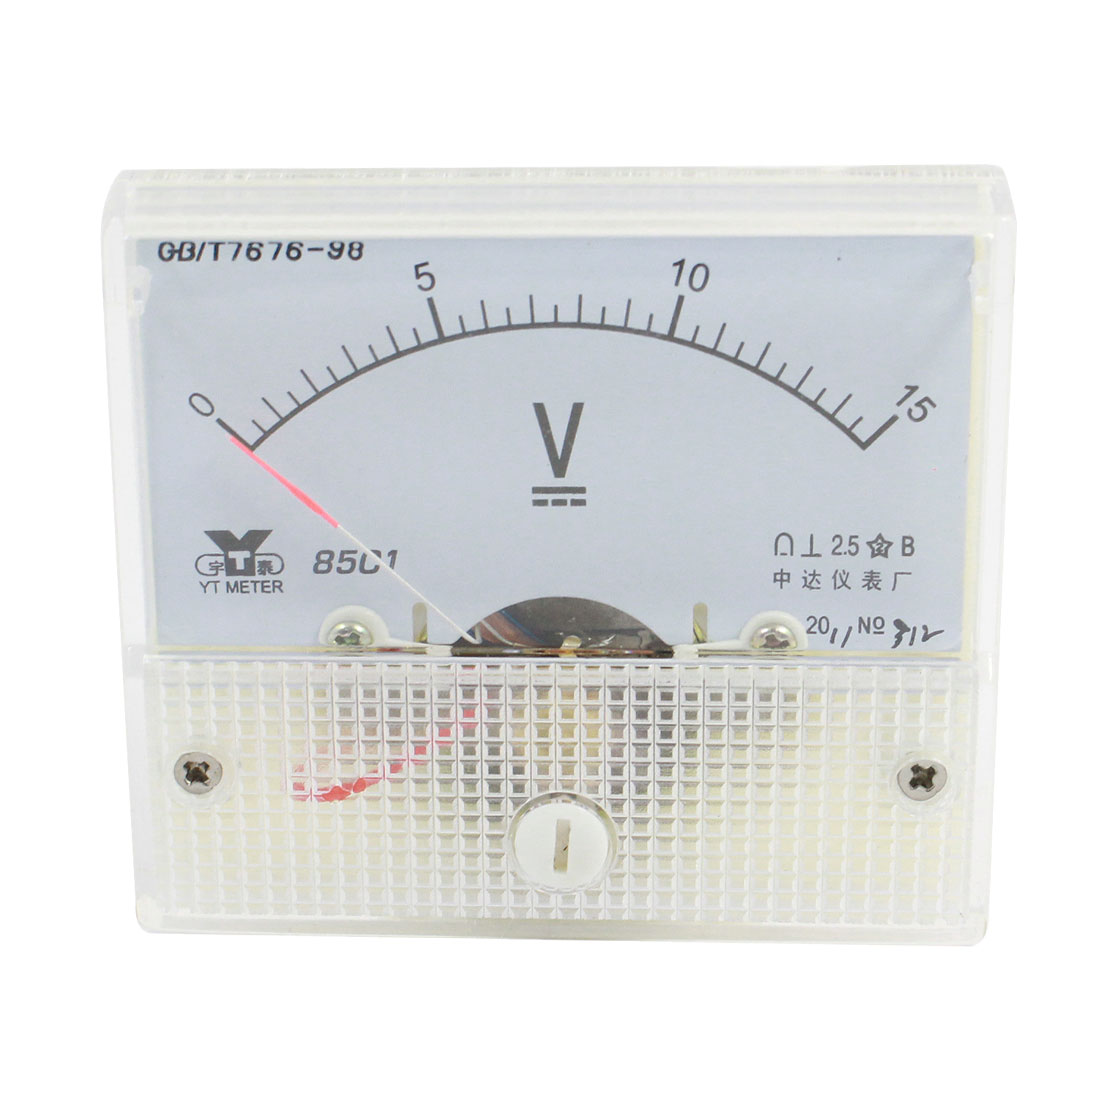 Class 2.5 DC 0-15V Voltage Panel Gauge Meter Voltmeter 85C1